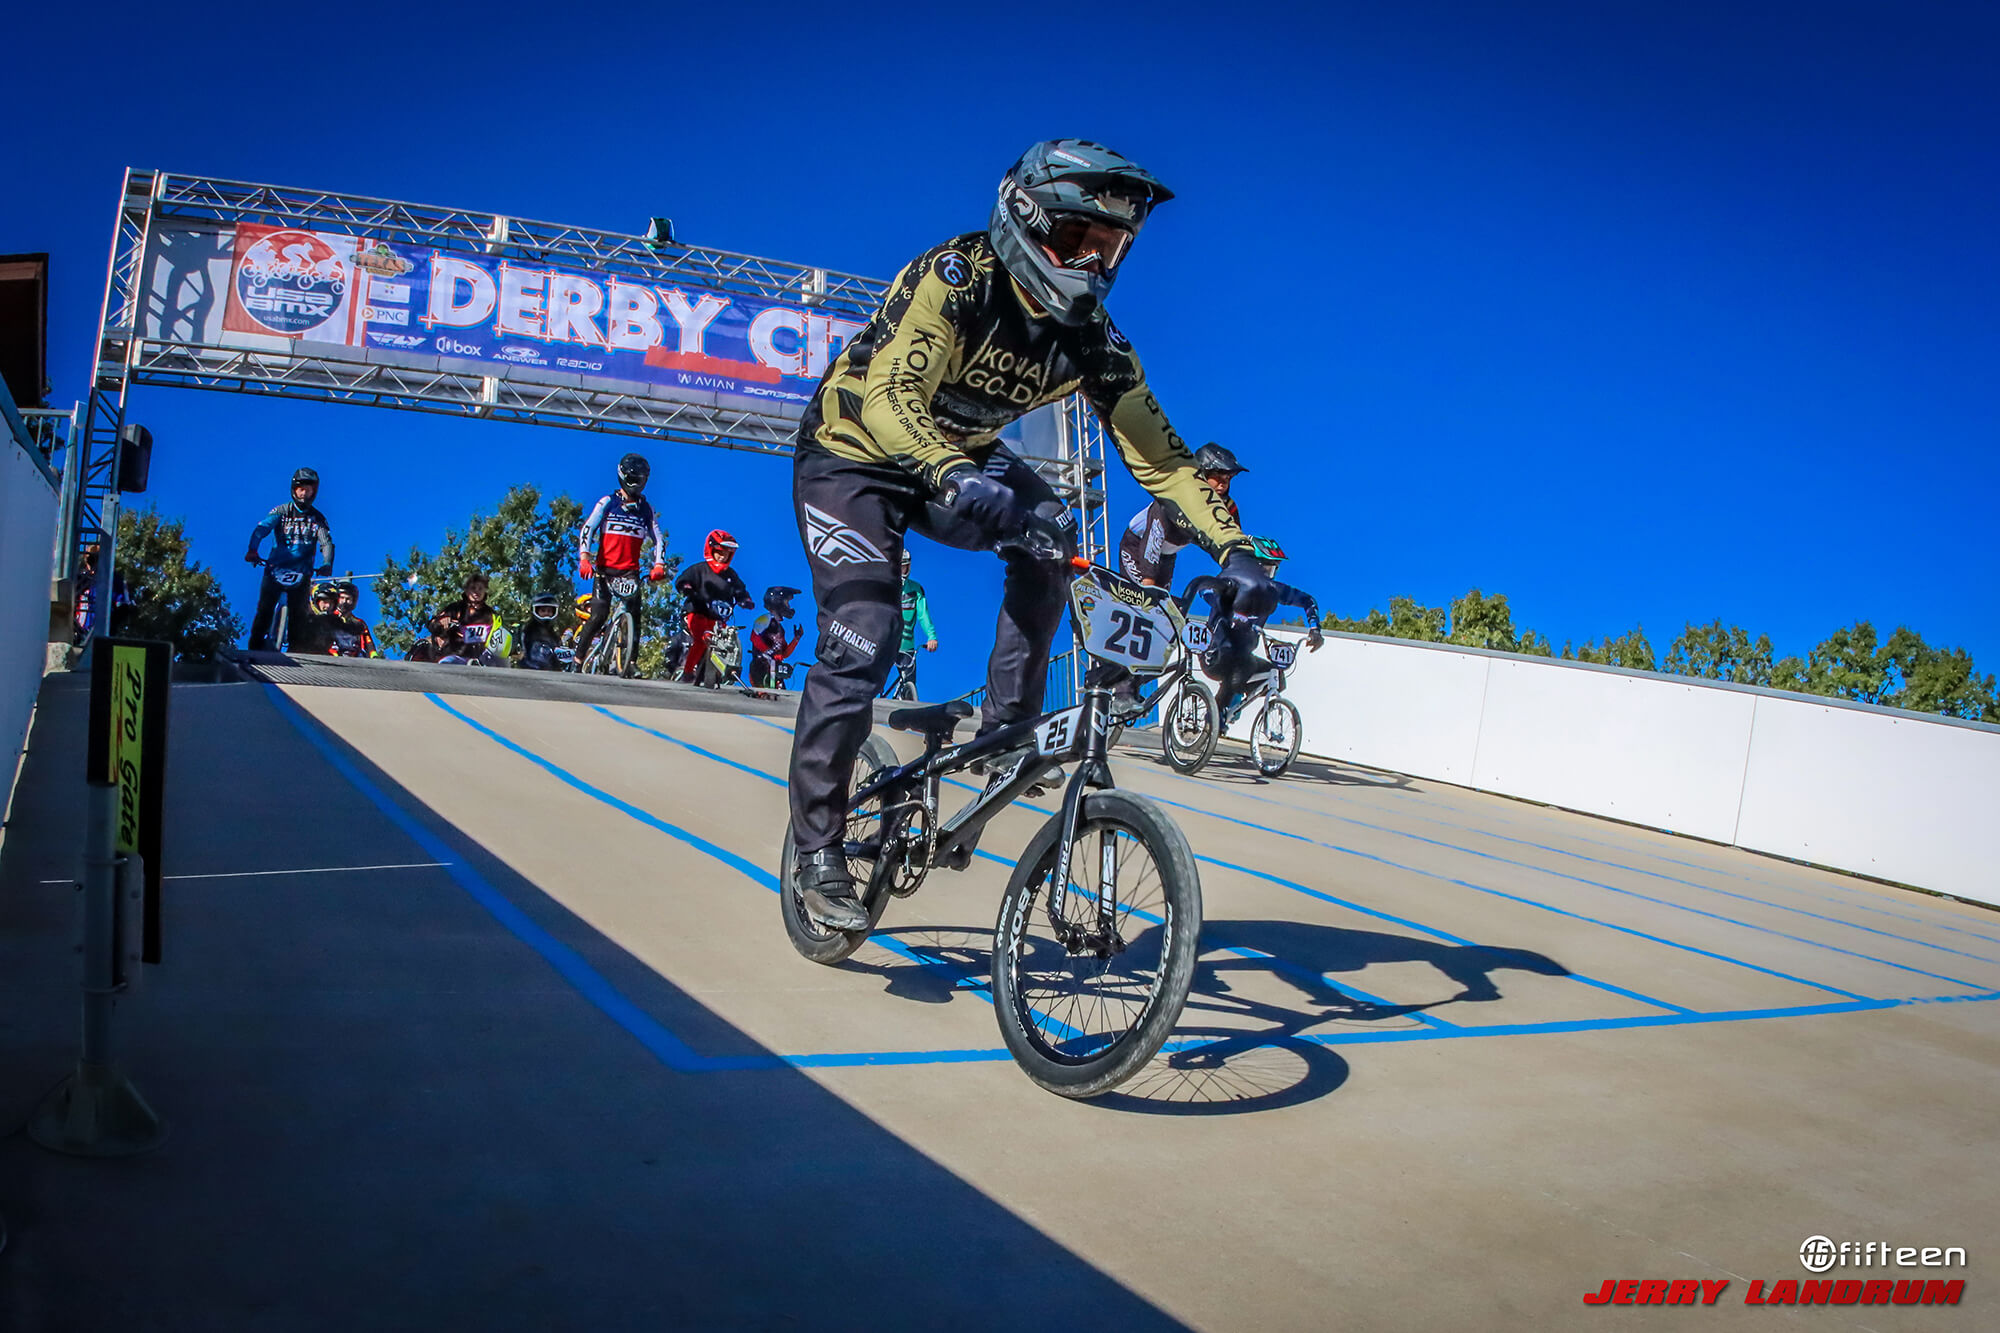 USA BMX Derby City 2020 - Jerry Landrum - 0104